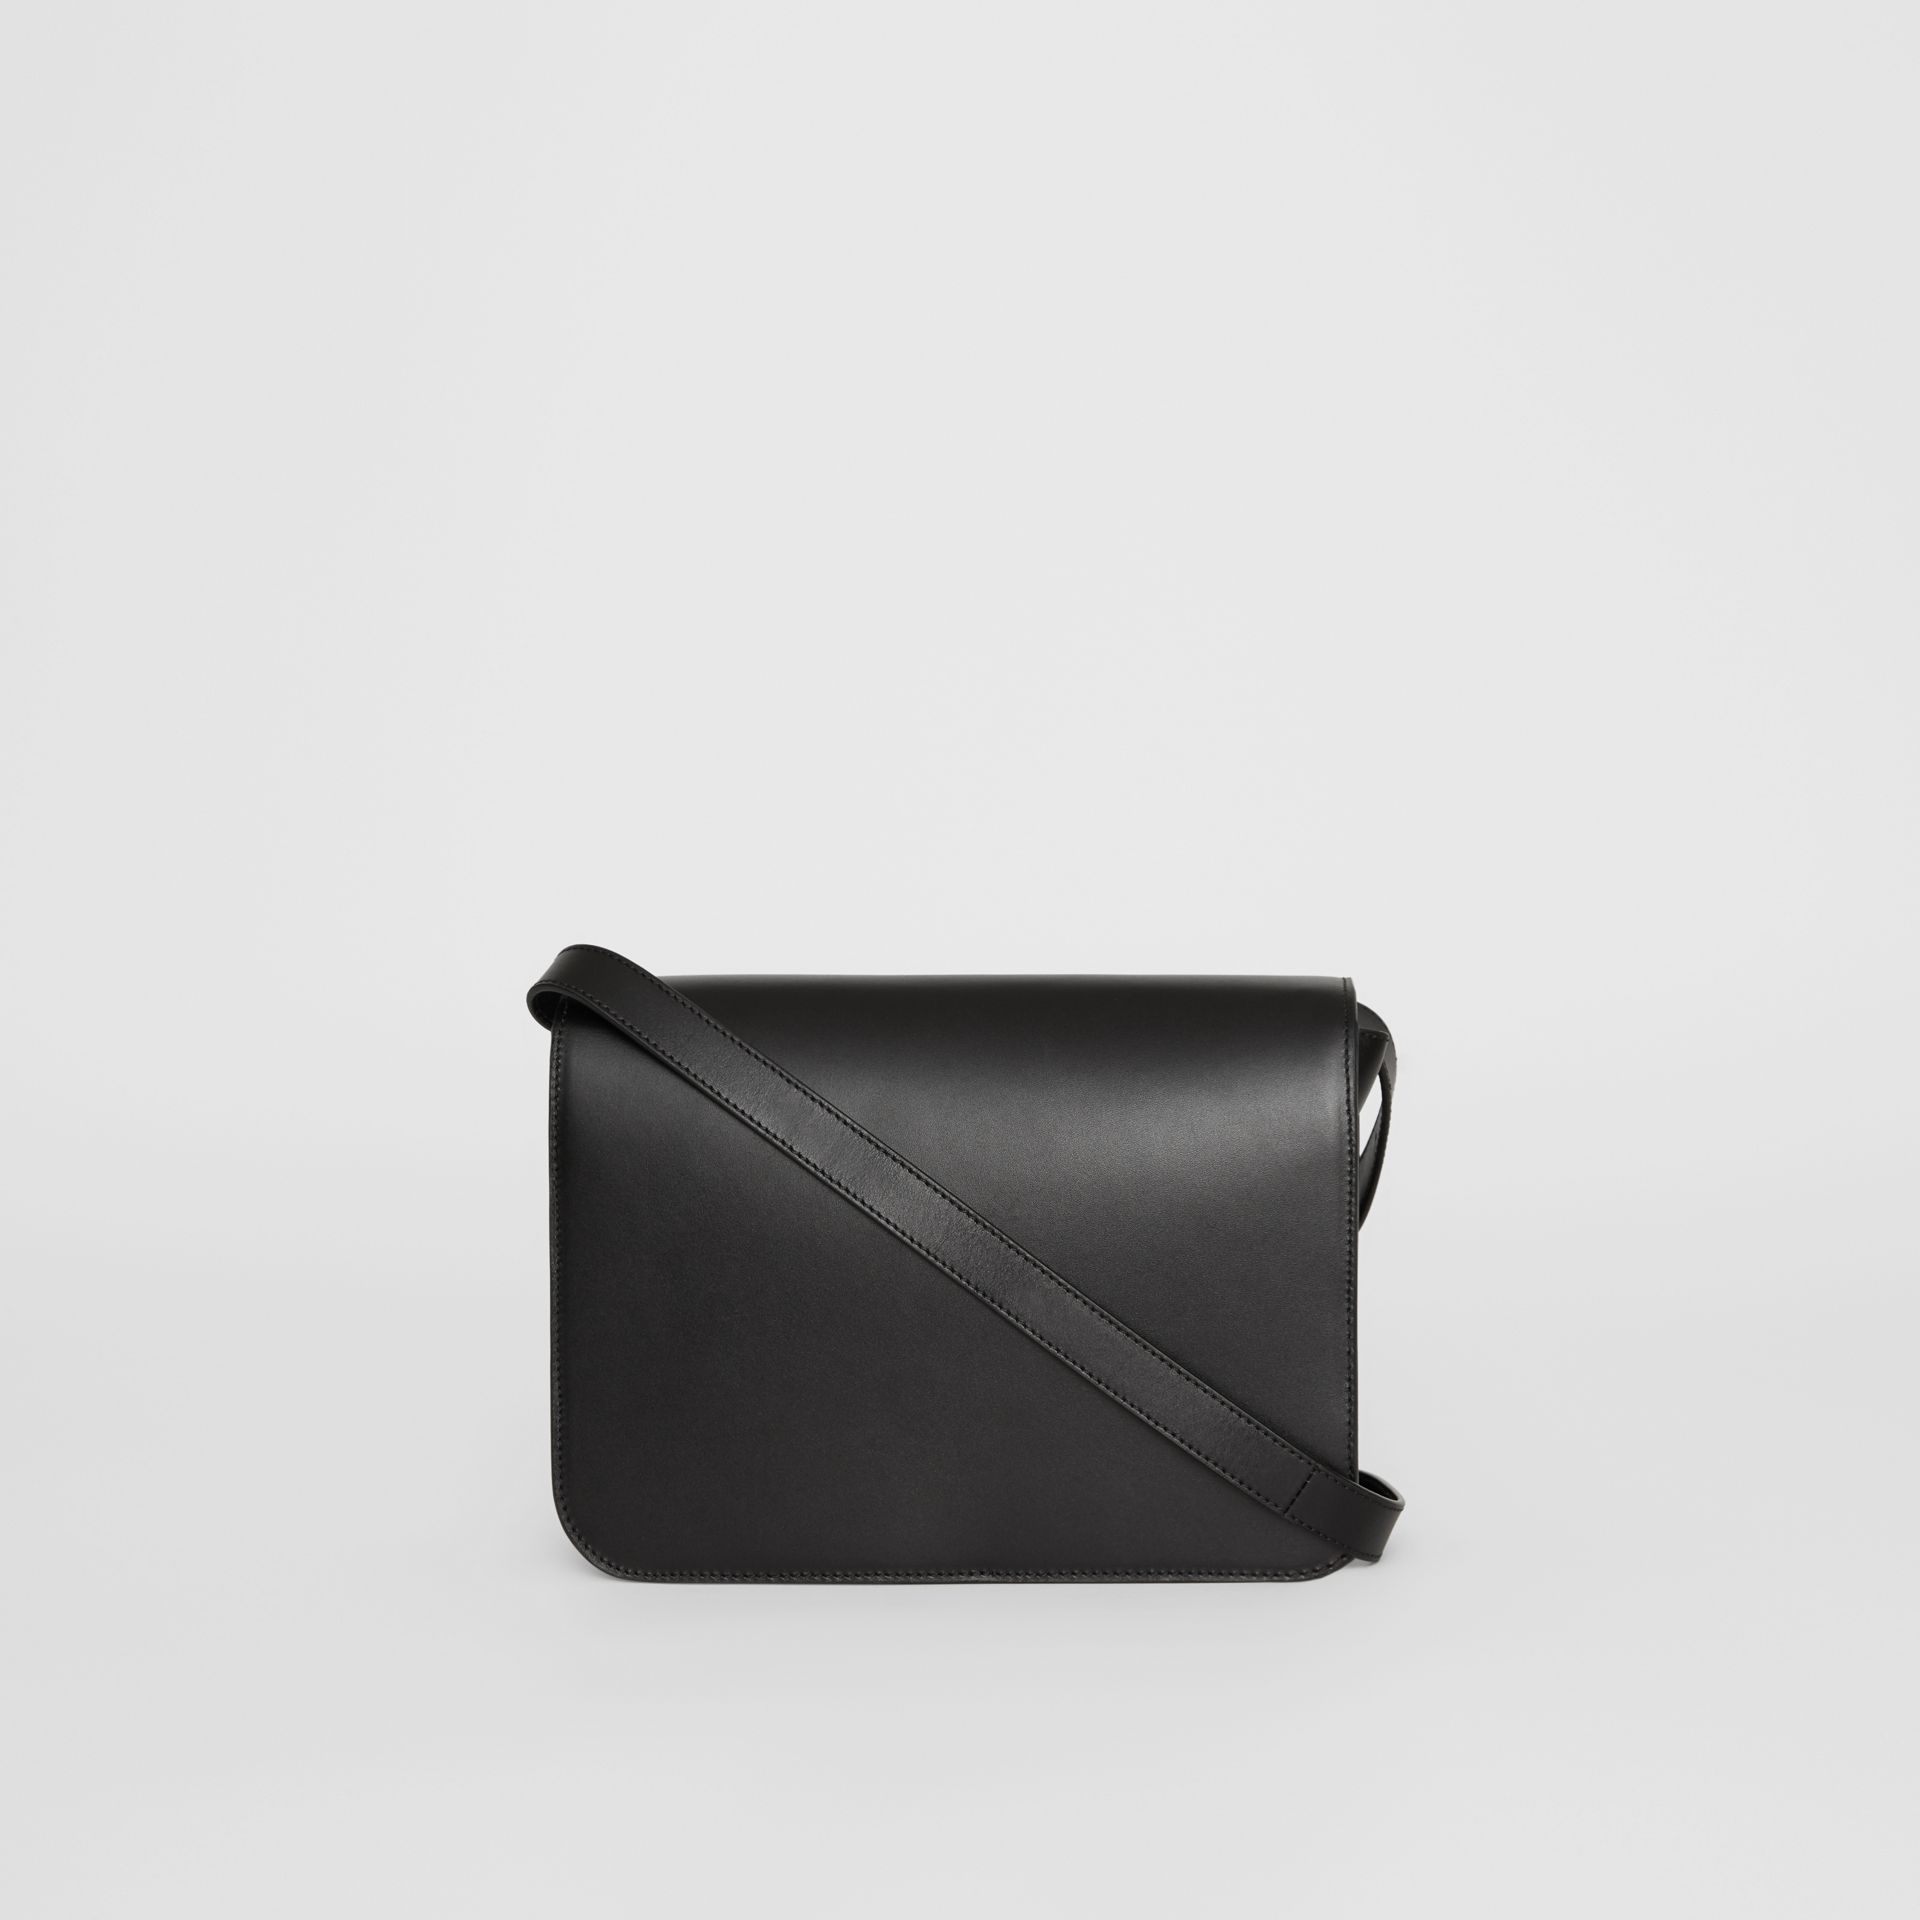 Leather TB Bag in Black - Women | Burberry - gallery image 7